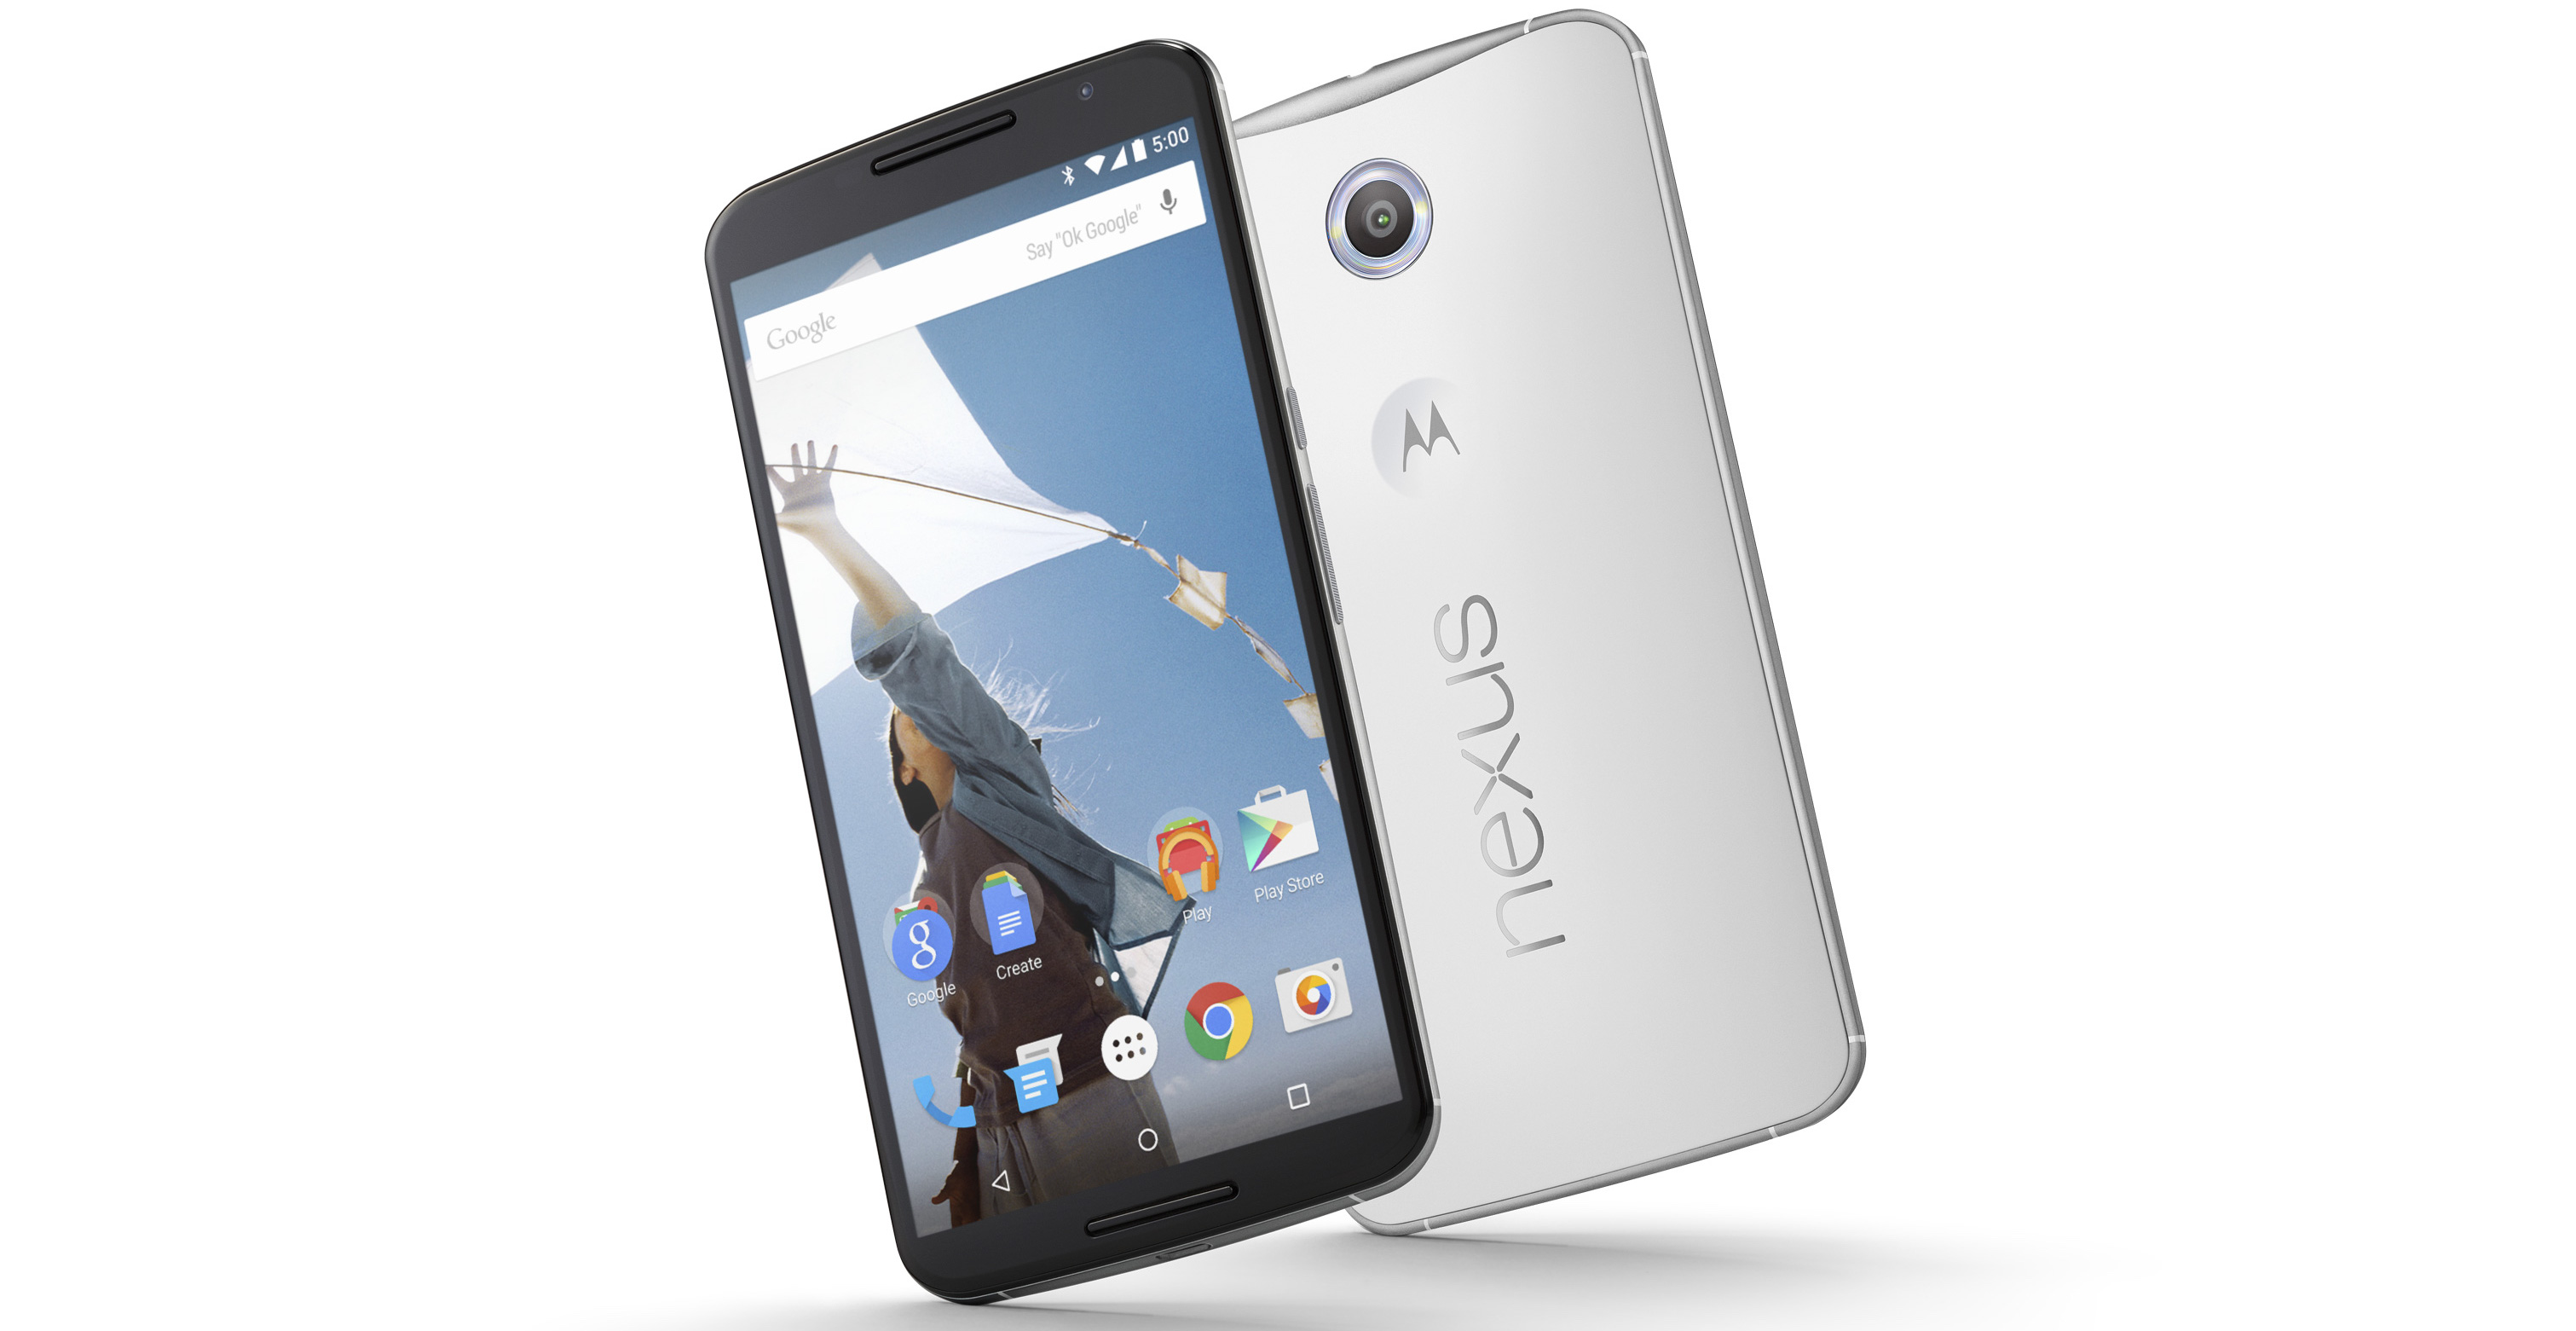 9to5toys Lunch Break Nexus 6p From 450 Refurb 6 250 Moto Swag Chandelier Ebay Electronics Cars Fashion Collectibles X Pure Edition 350 More